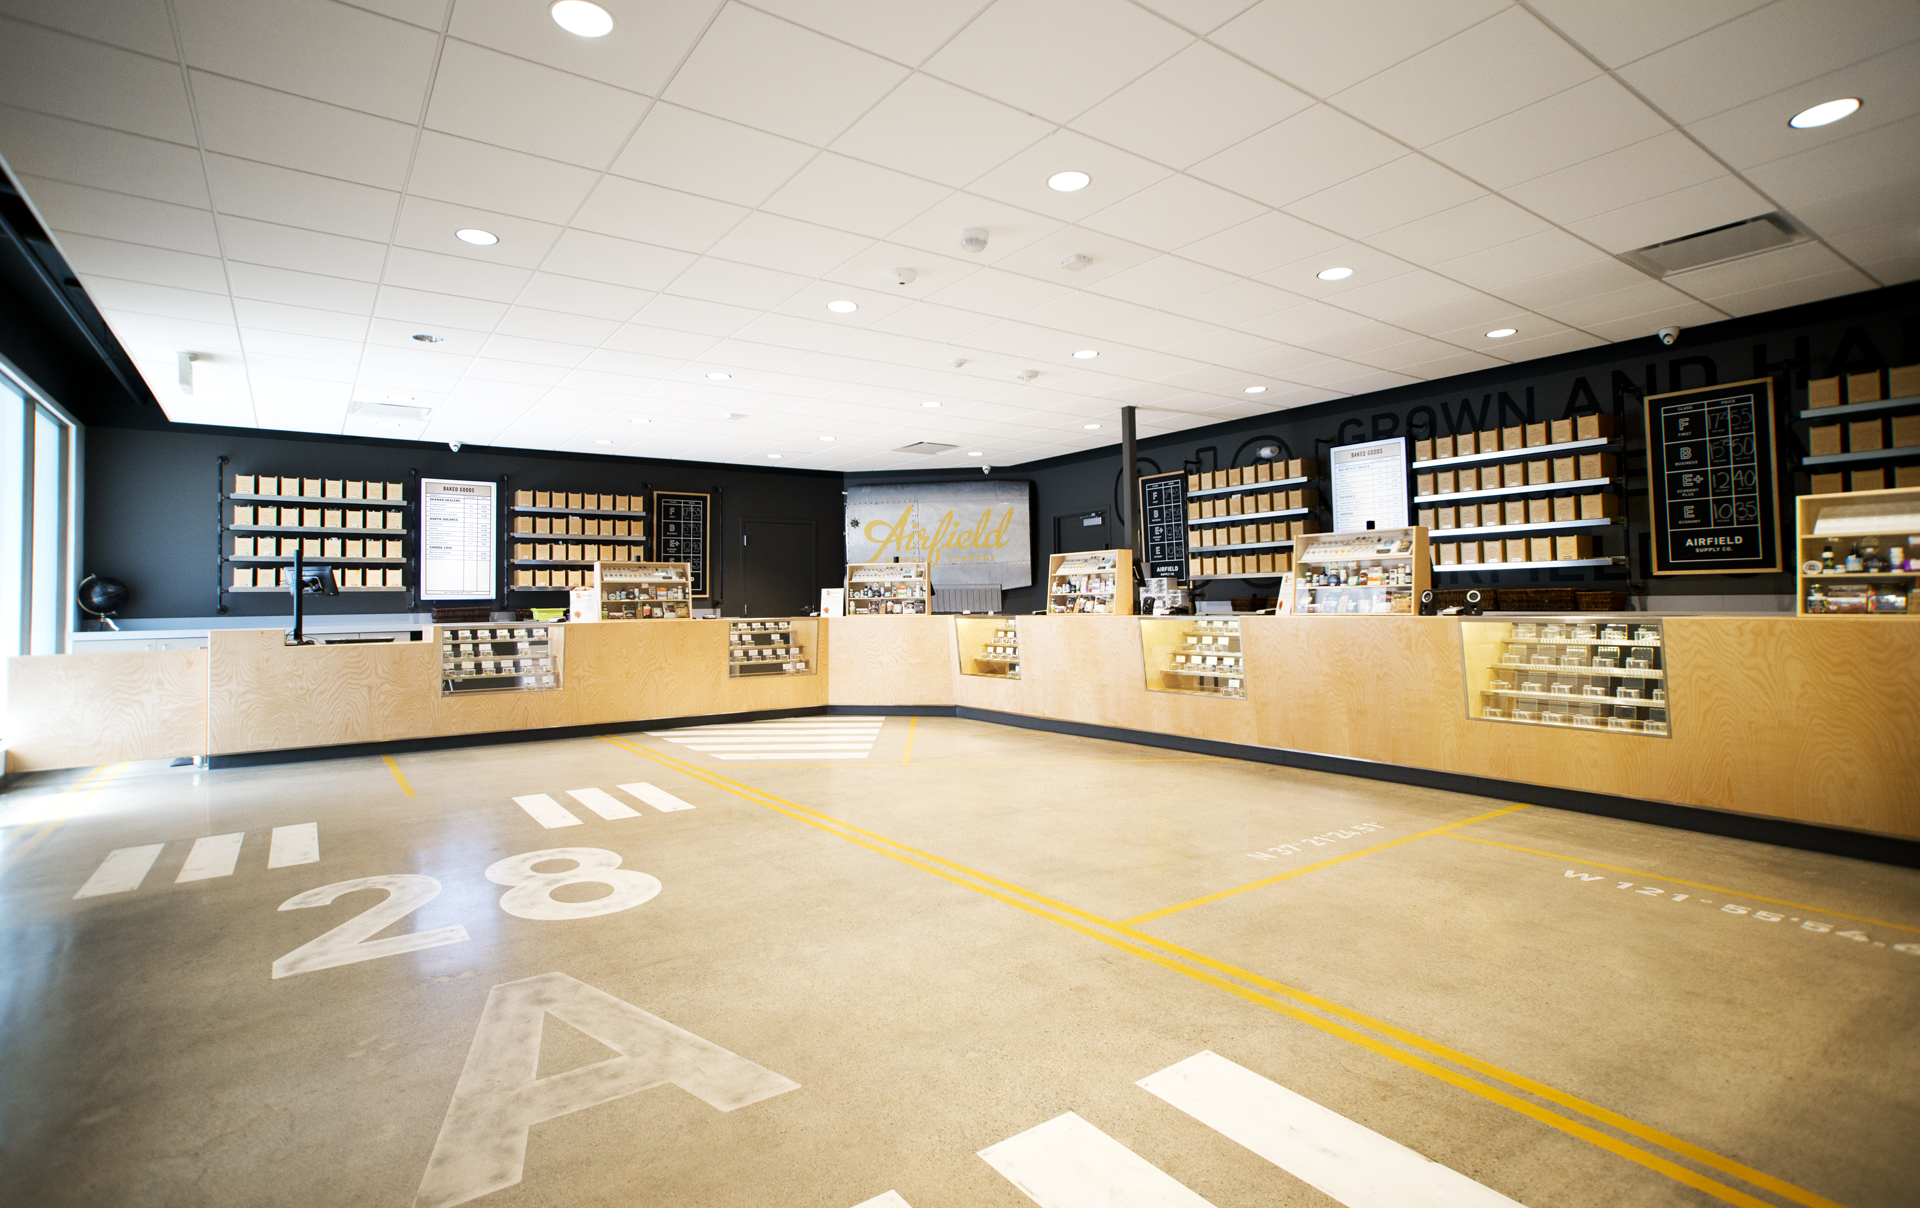 Airfield Supply Company medical marijuana dispensary in San Jose, California